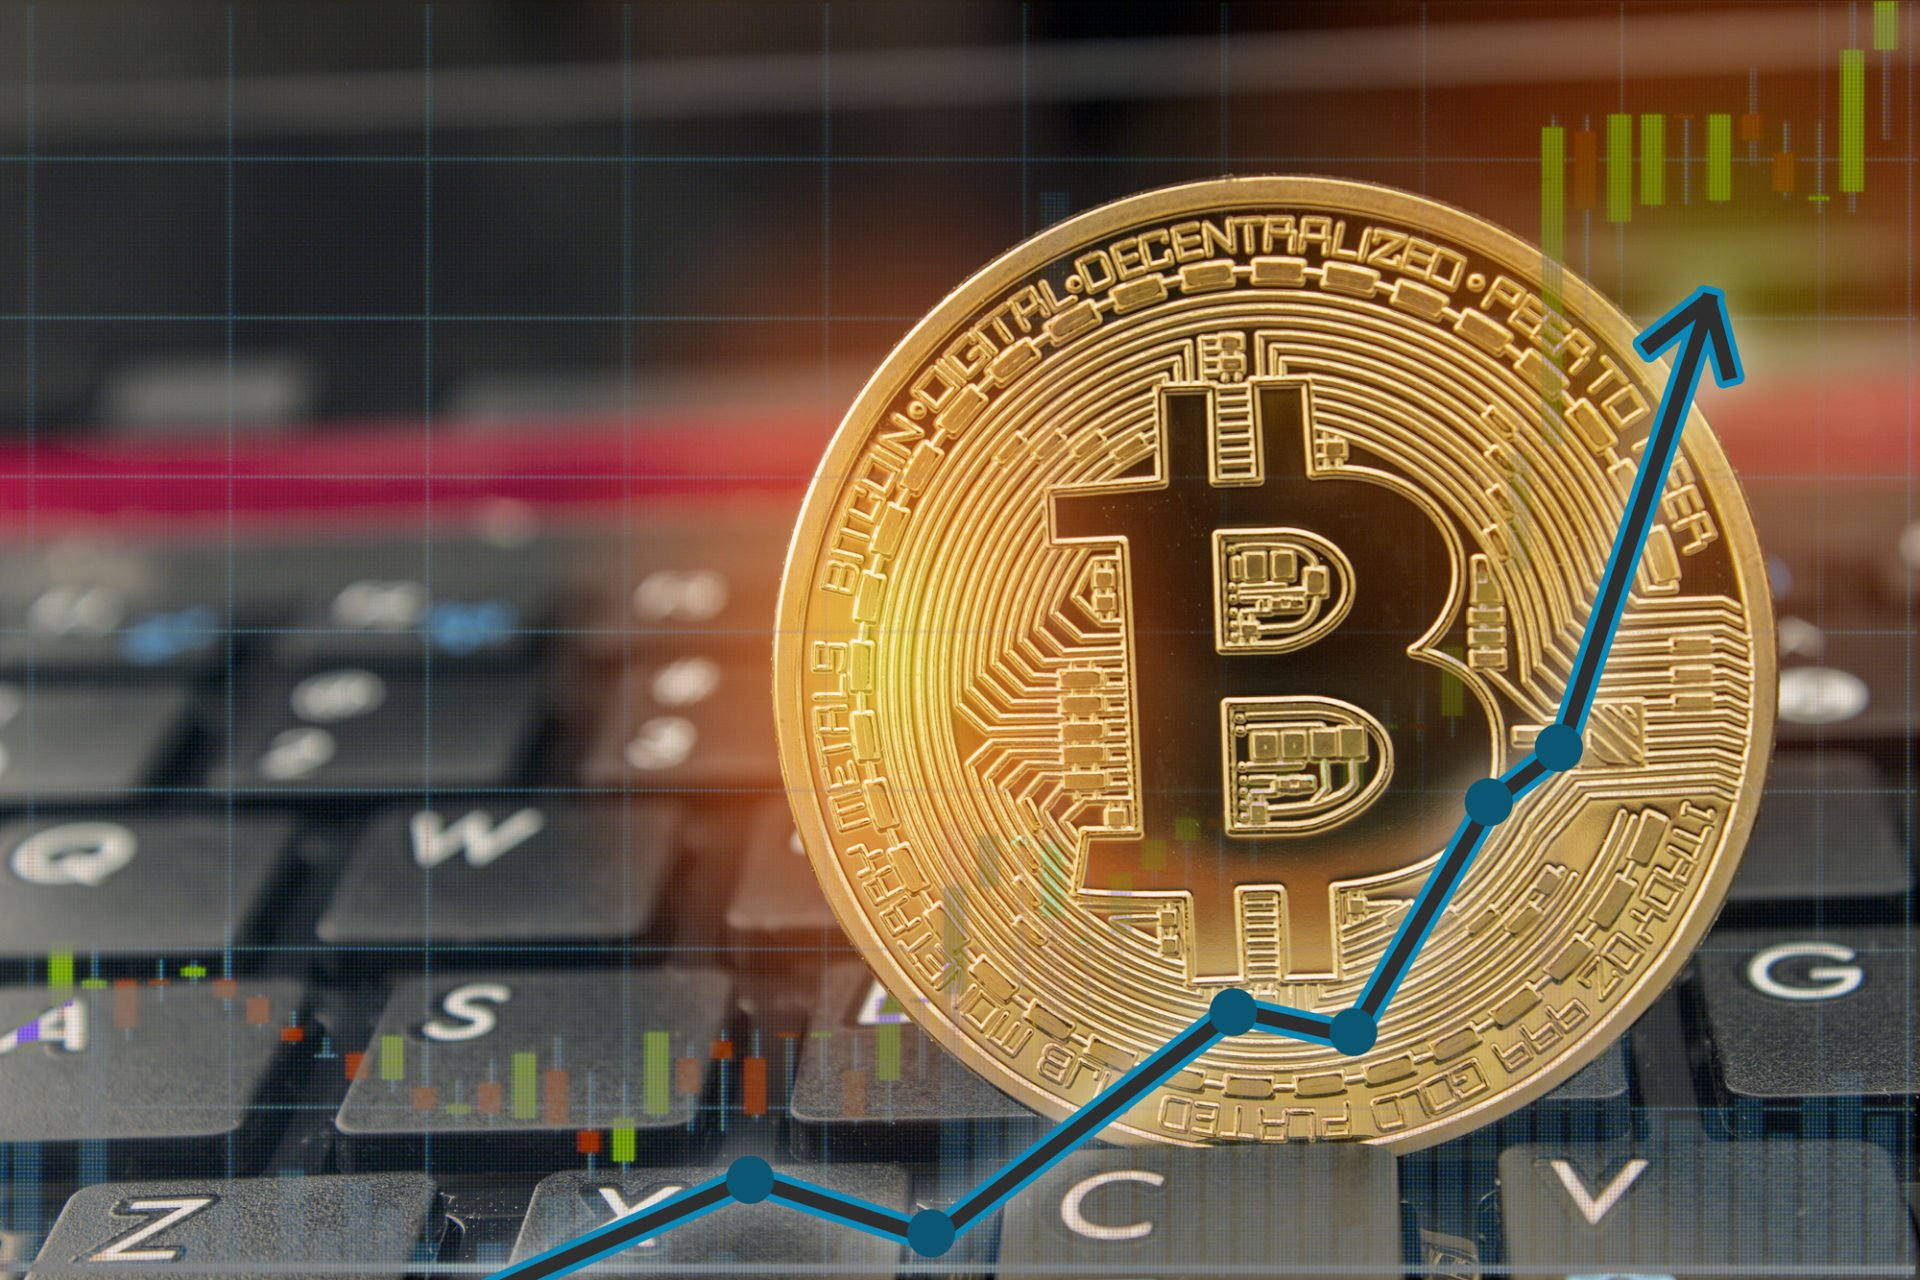 Bitcoin 101: What It Is, How It Works, And Why You Should Care